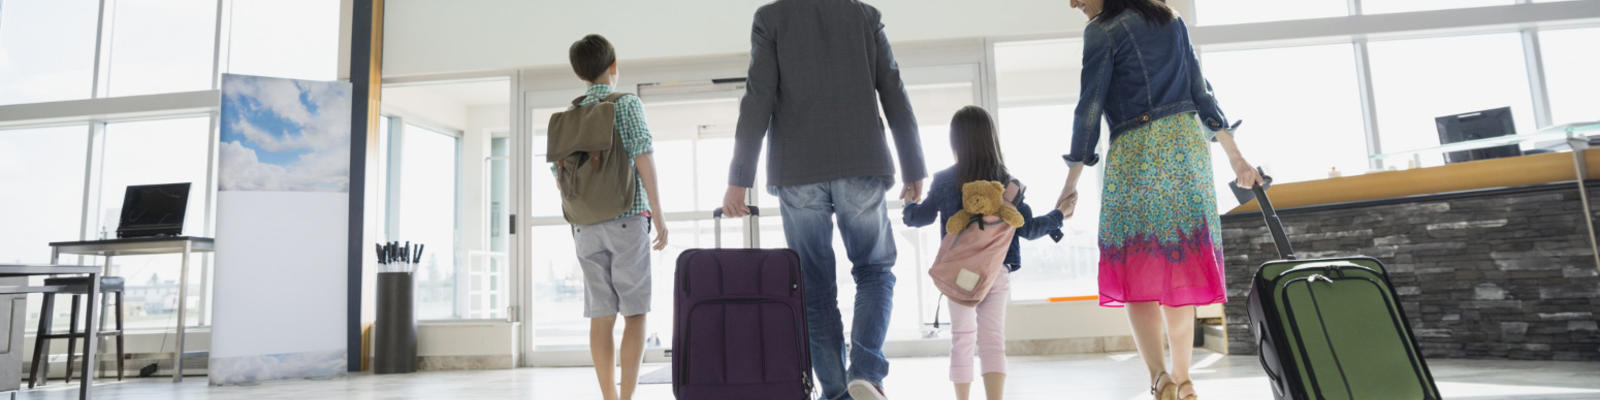 A family of four walking through the airport hand in hand with their bags.